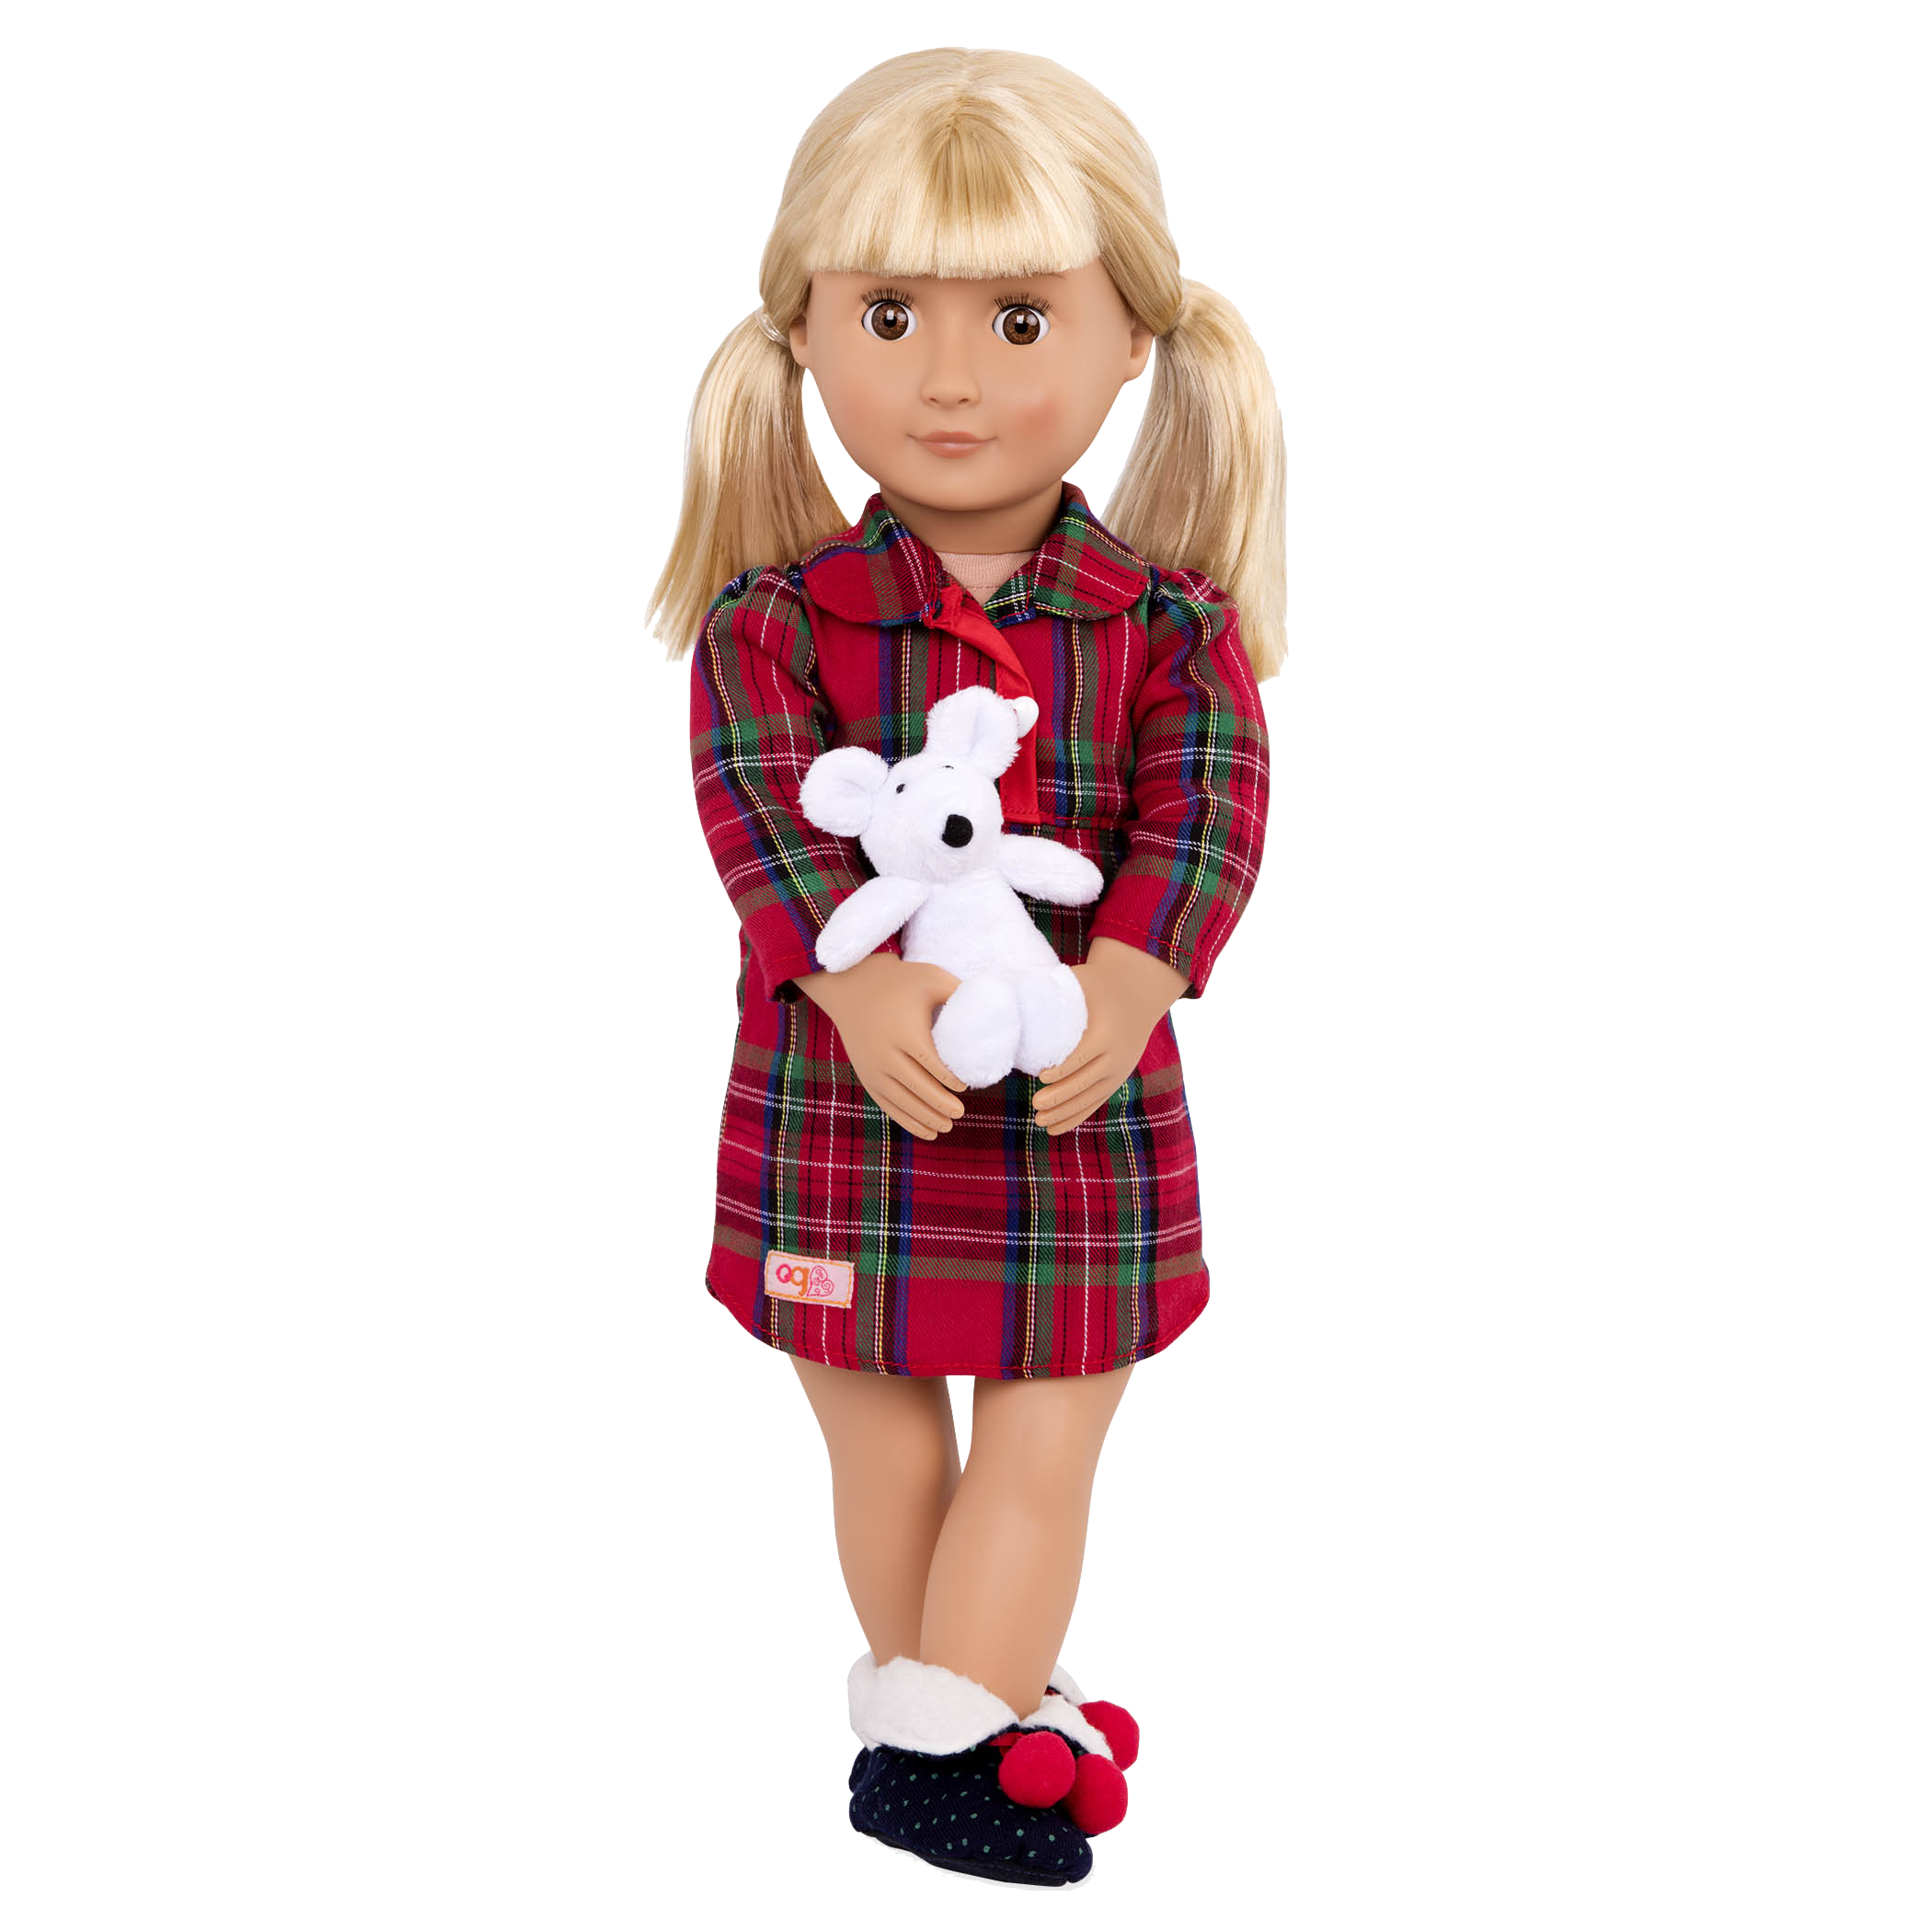 Nighty night Nightie holiday pajama outfit Rowan doll wearing01